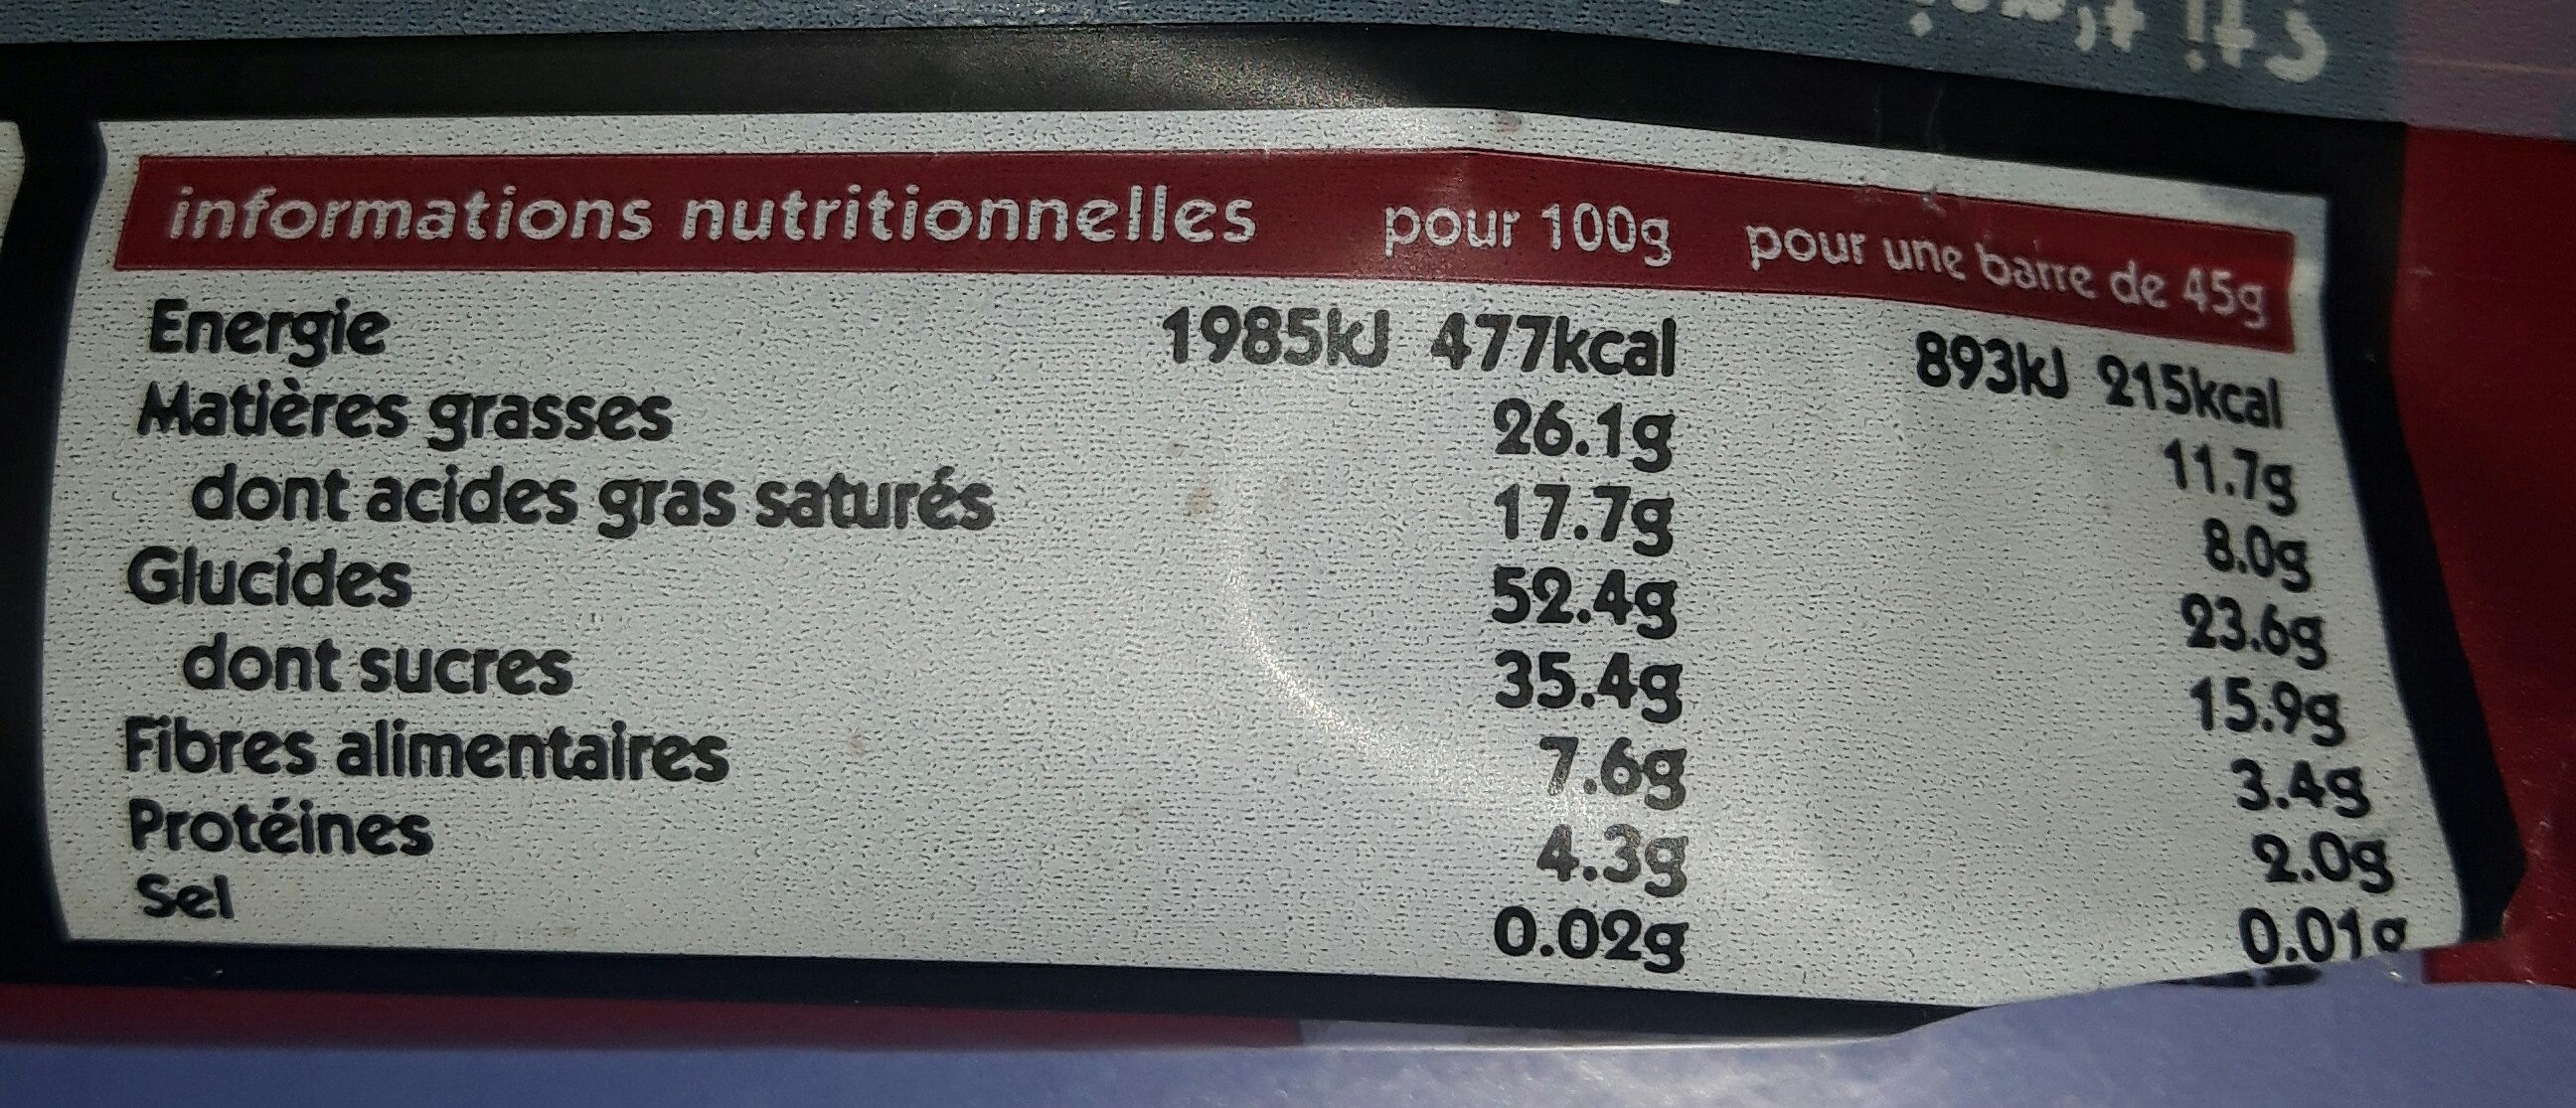 Sour Cherry Sweets - Informations nutritionnelles - fr